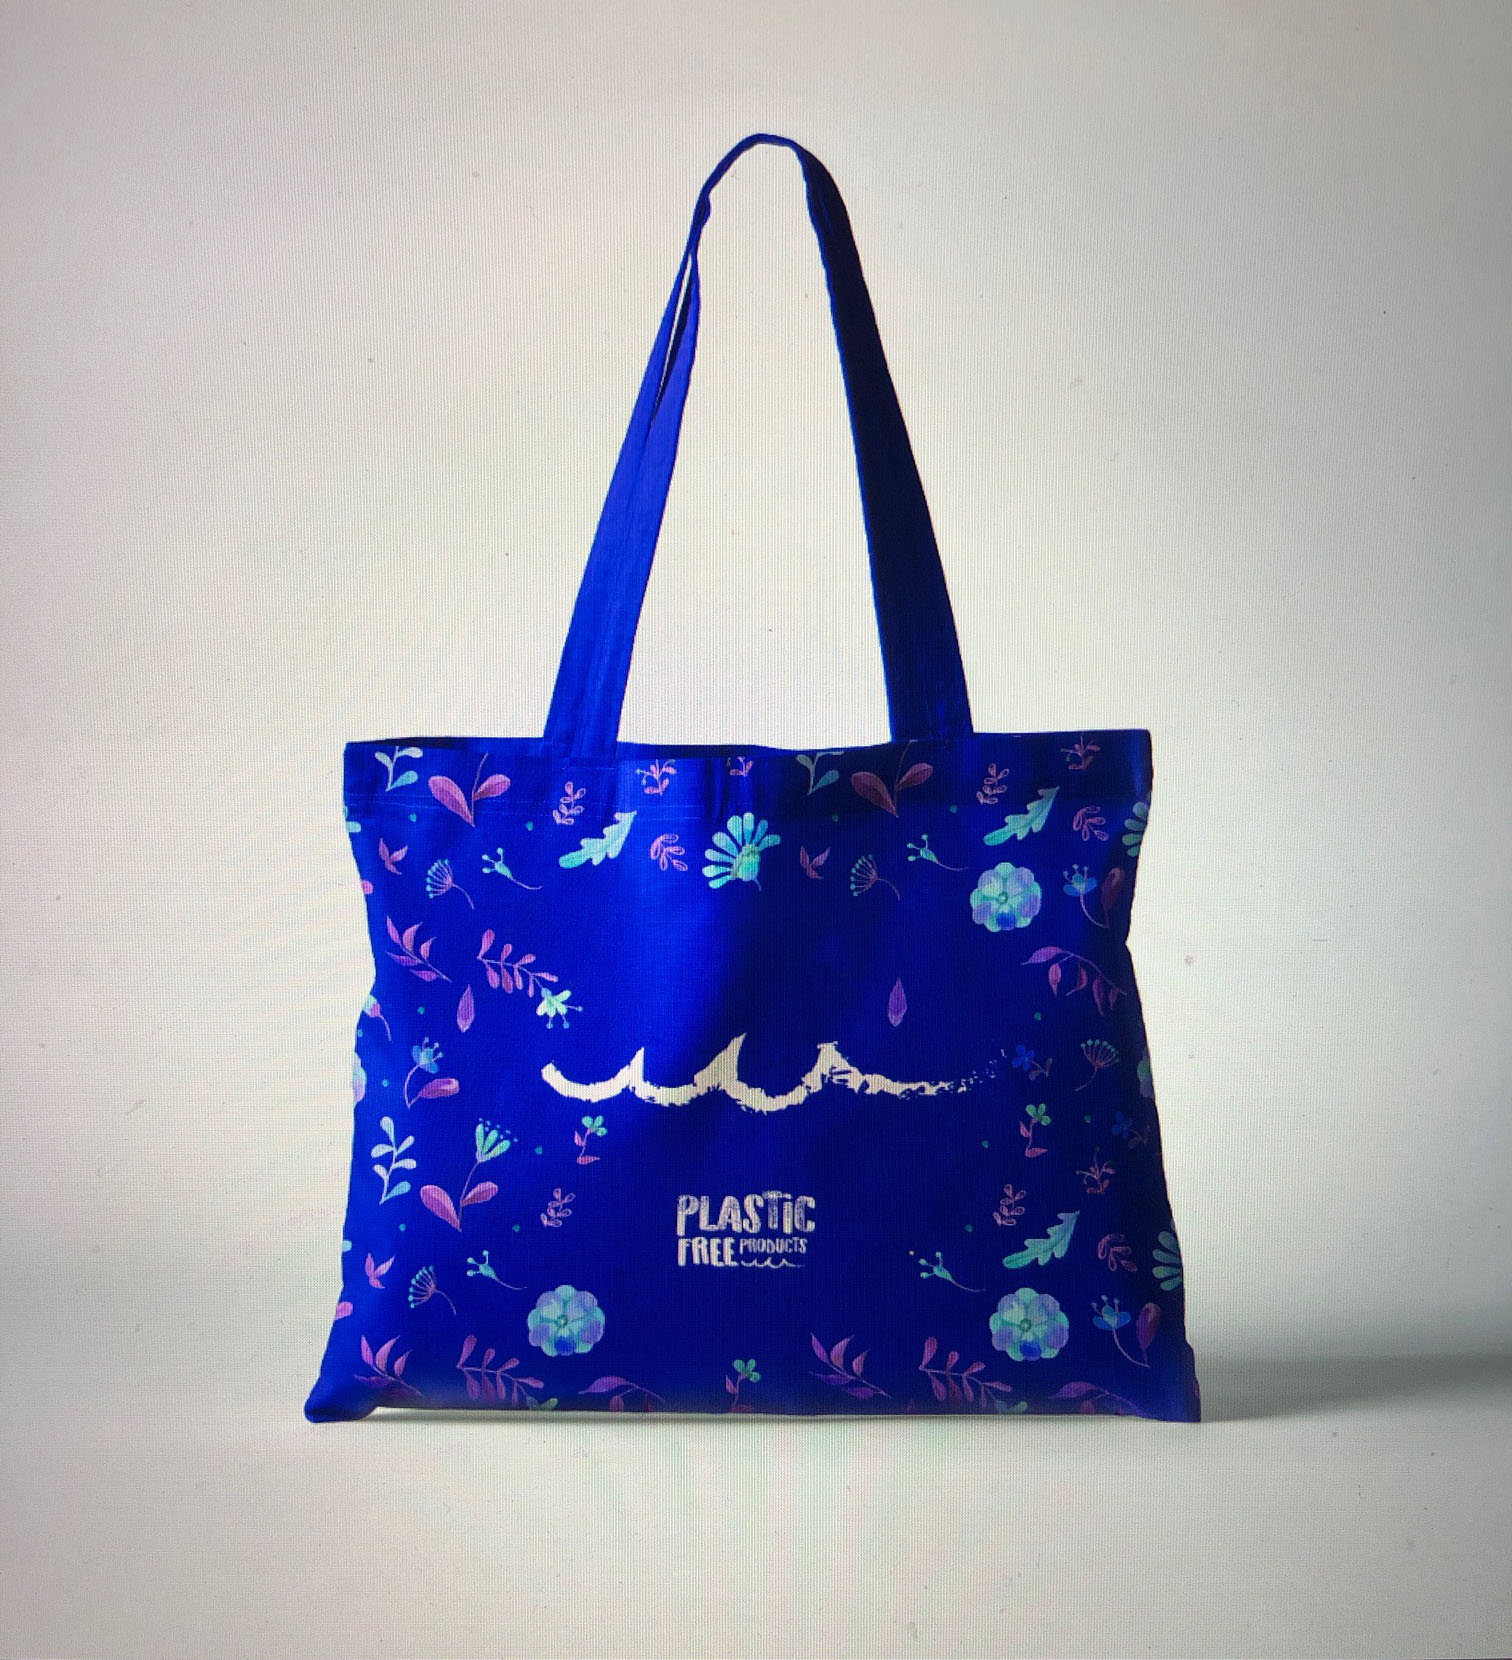 Reusable #seachange bags - CURRENTLY SOLD OUTContact hello@plasticfreeproducts.co.uk